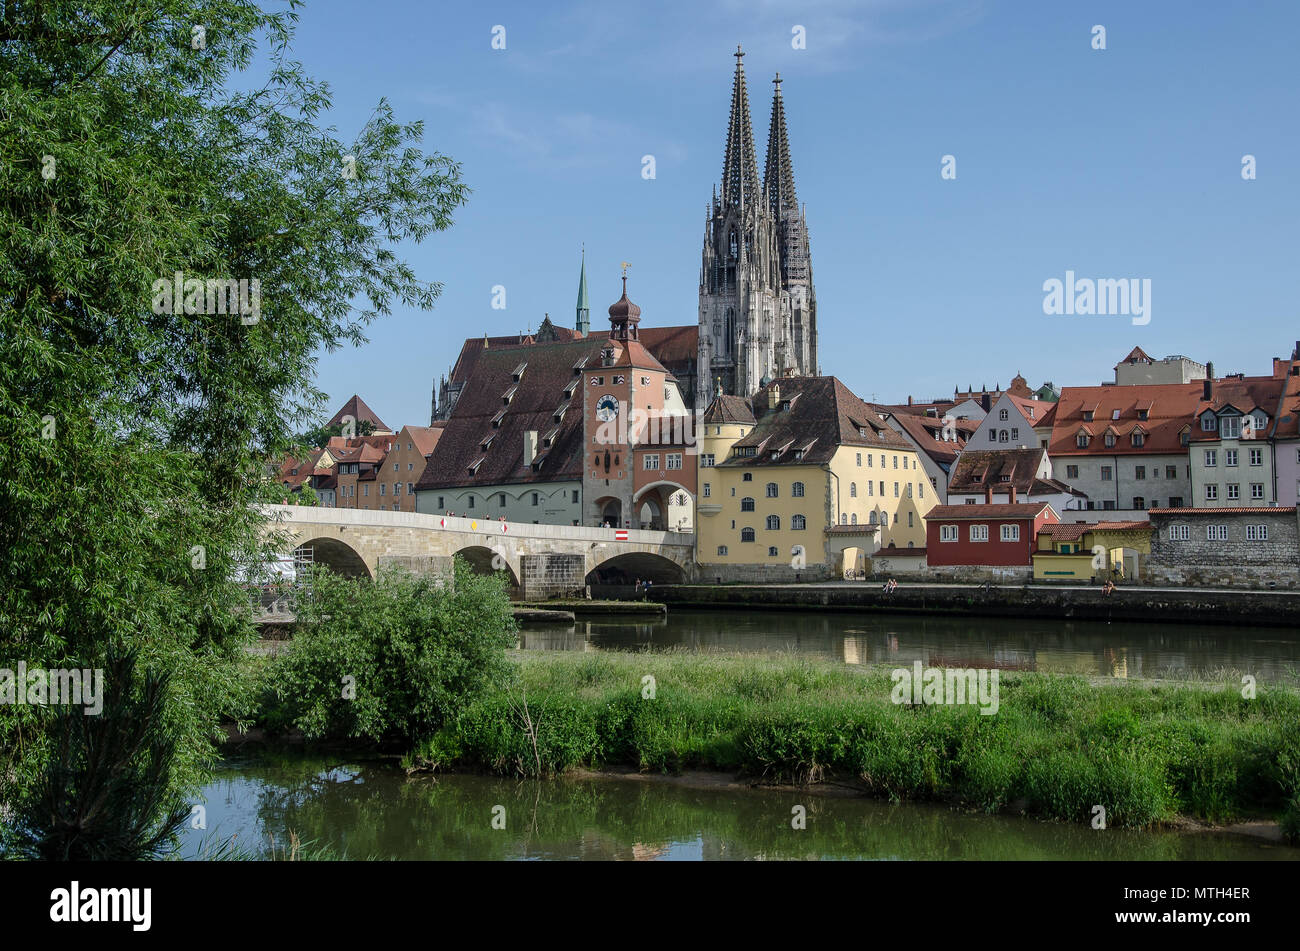 Regensburg is the best-preserved medieval city in Germany. Almost 1,000 monuments are located closely together in the city centre. - Stock Image